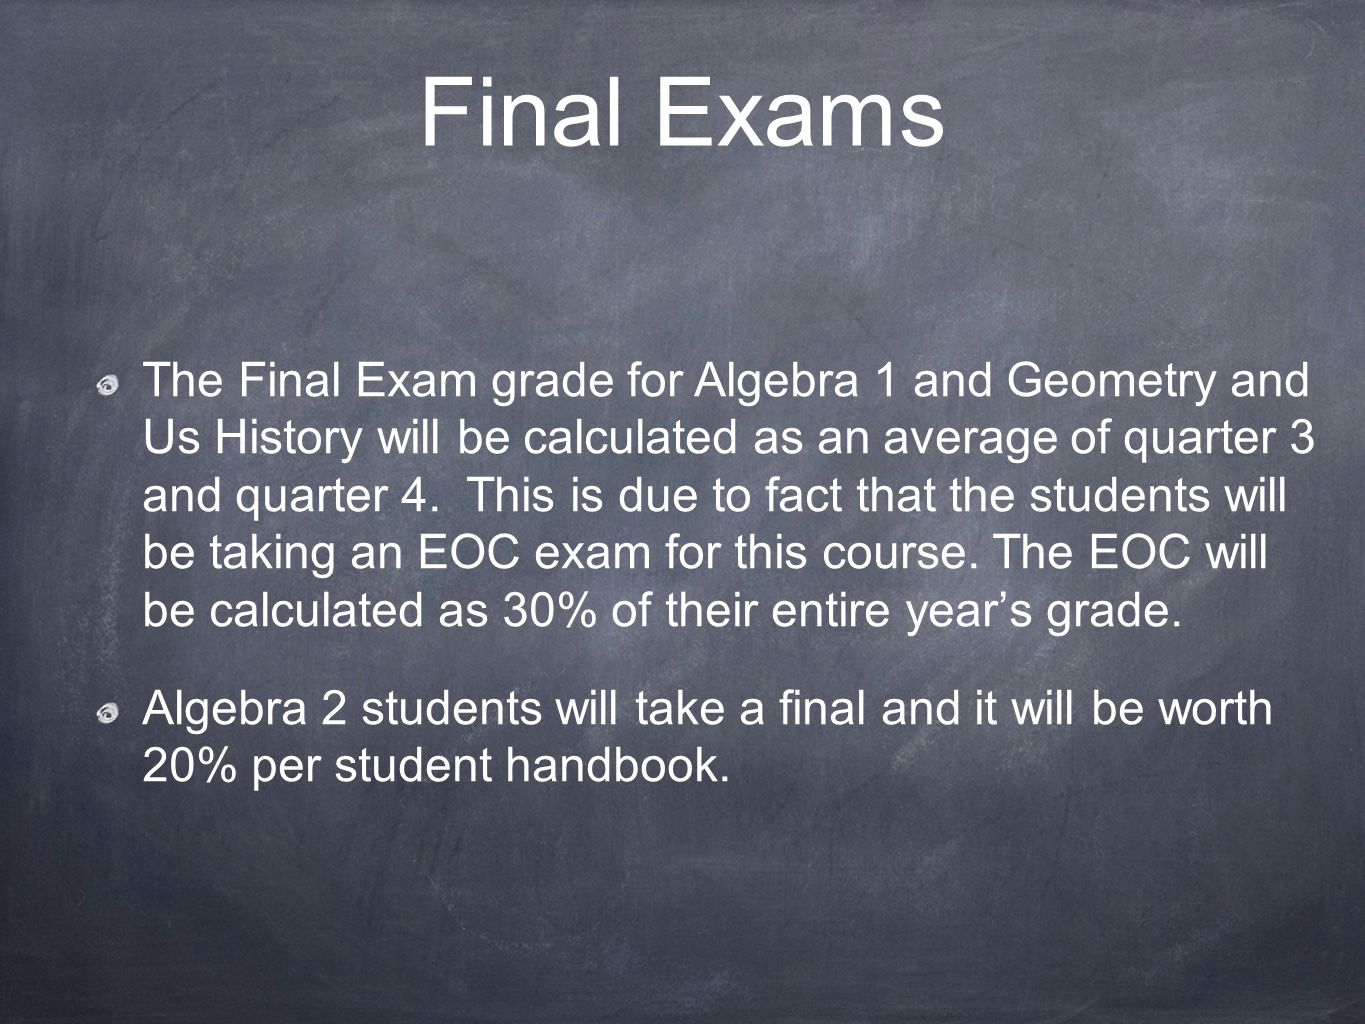 Final Exams The Final Exam grade for Algebra 1 and Geometry and Us History will be calculated as an average of quarter 3 and quarter 4.